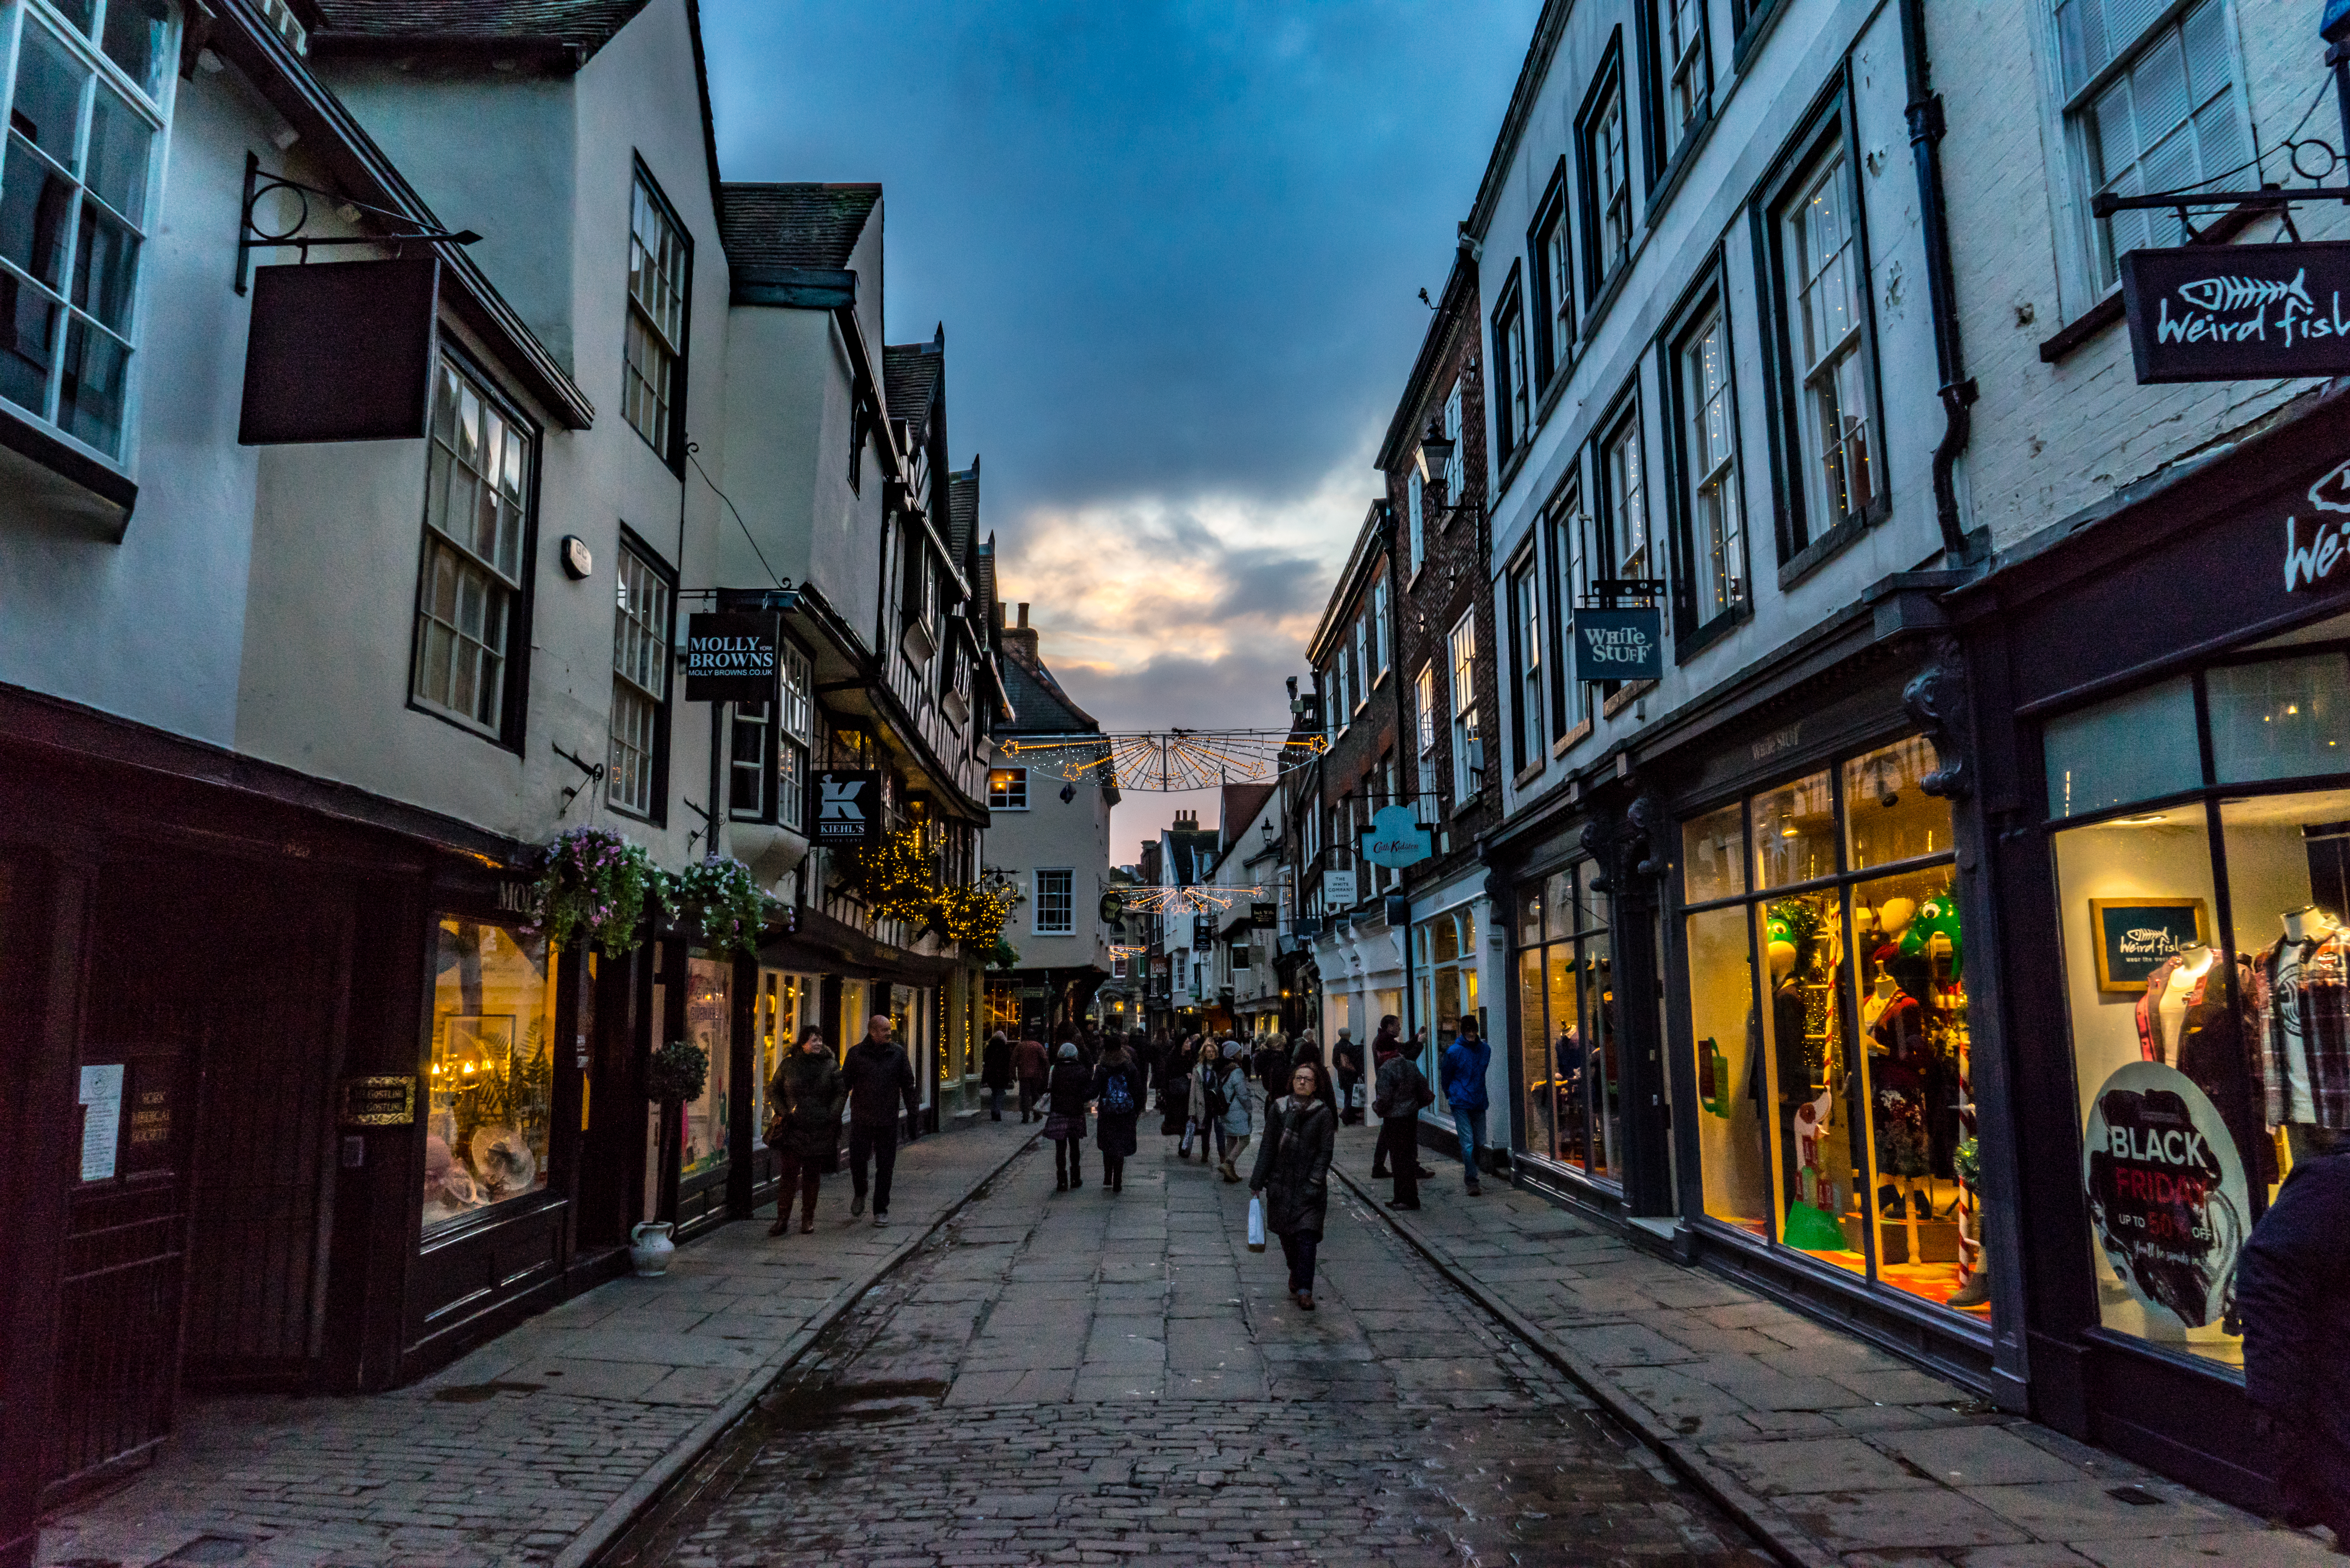 Yorkshire Day – the Hey Me team's favourite haunts